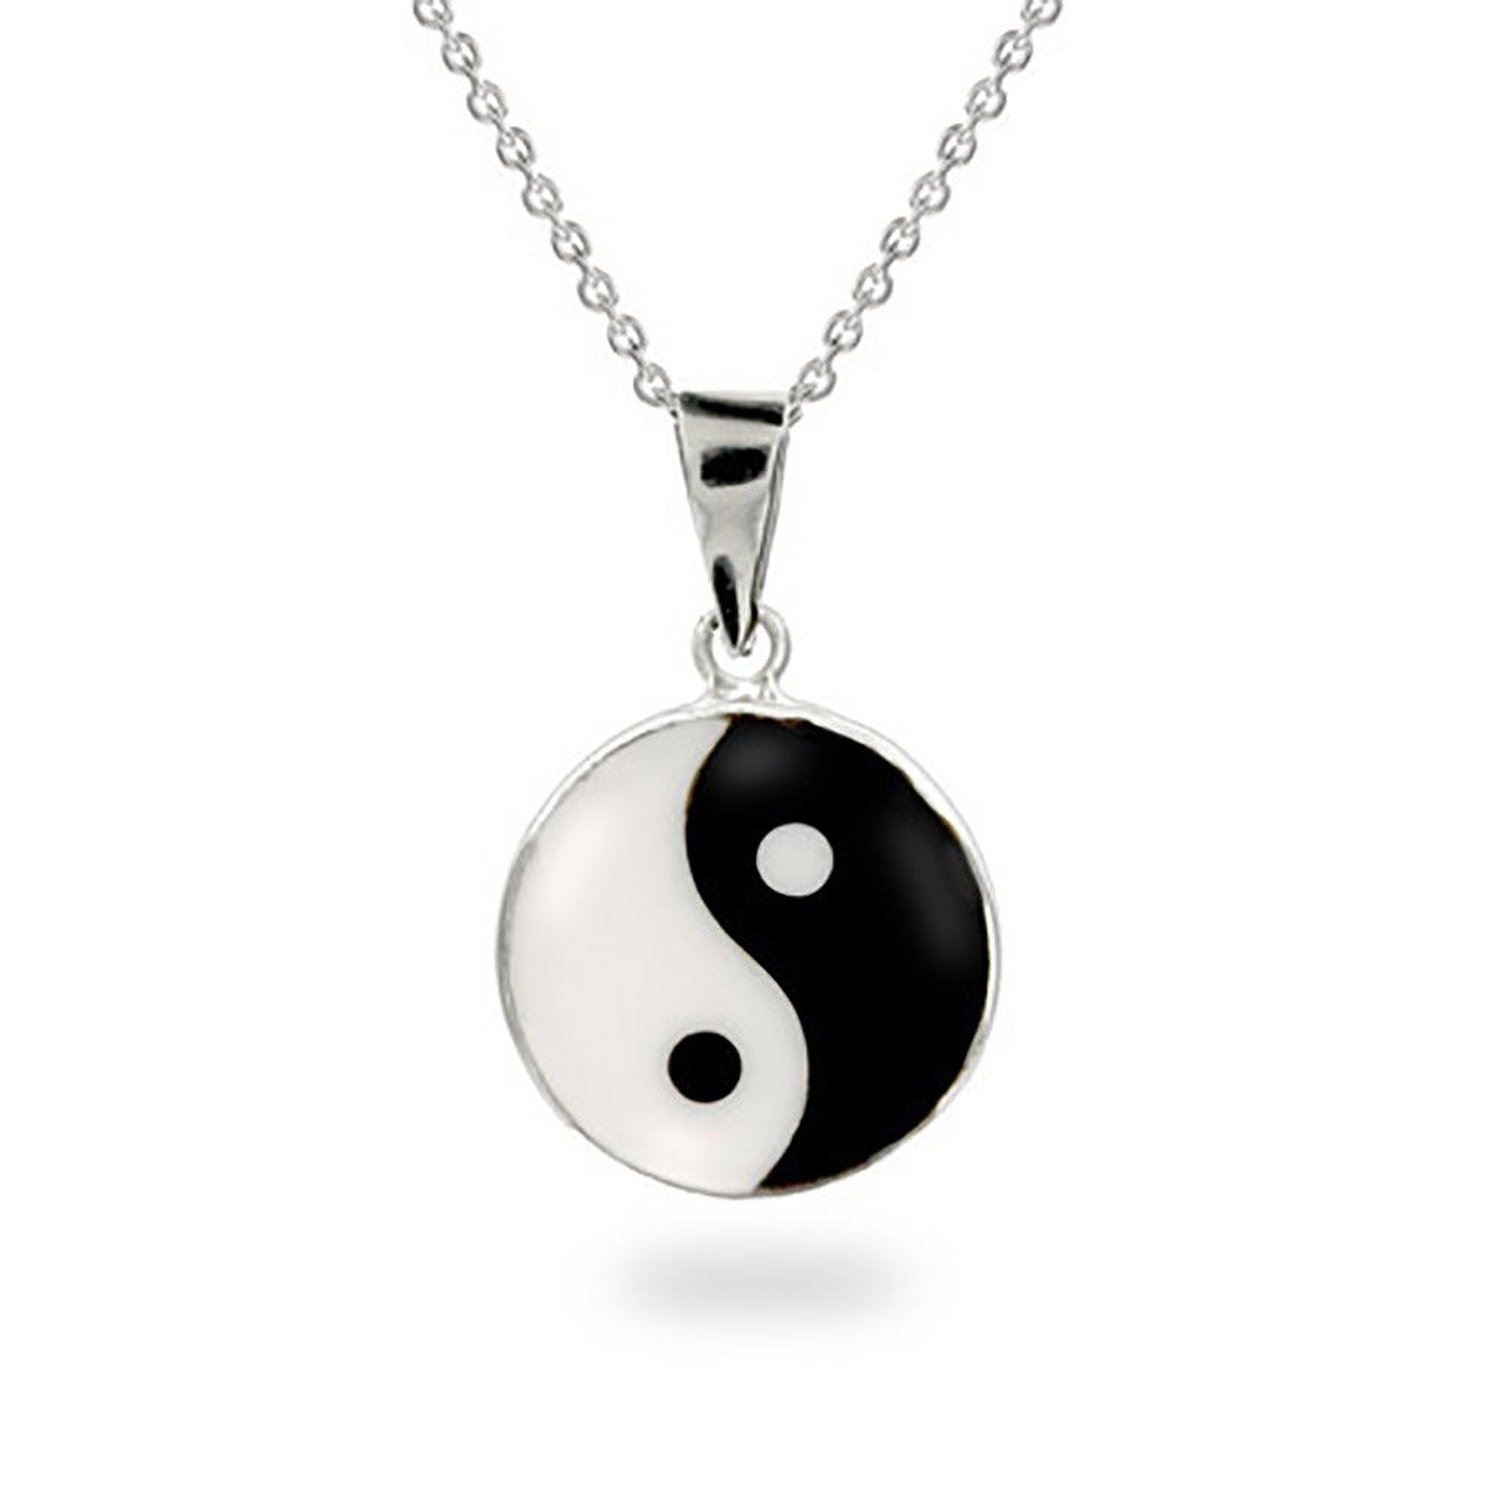 Amazon.com: sterling silver yin yang pendant: pendant necklaces: jewelry